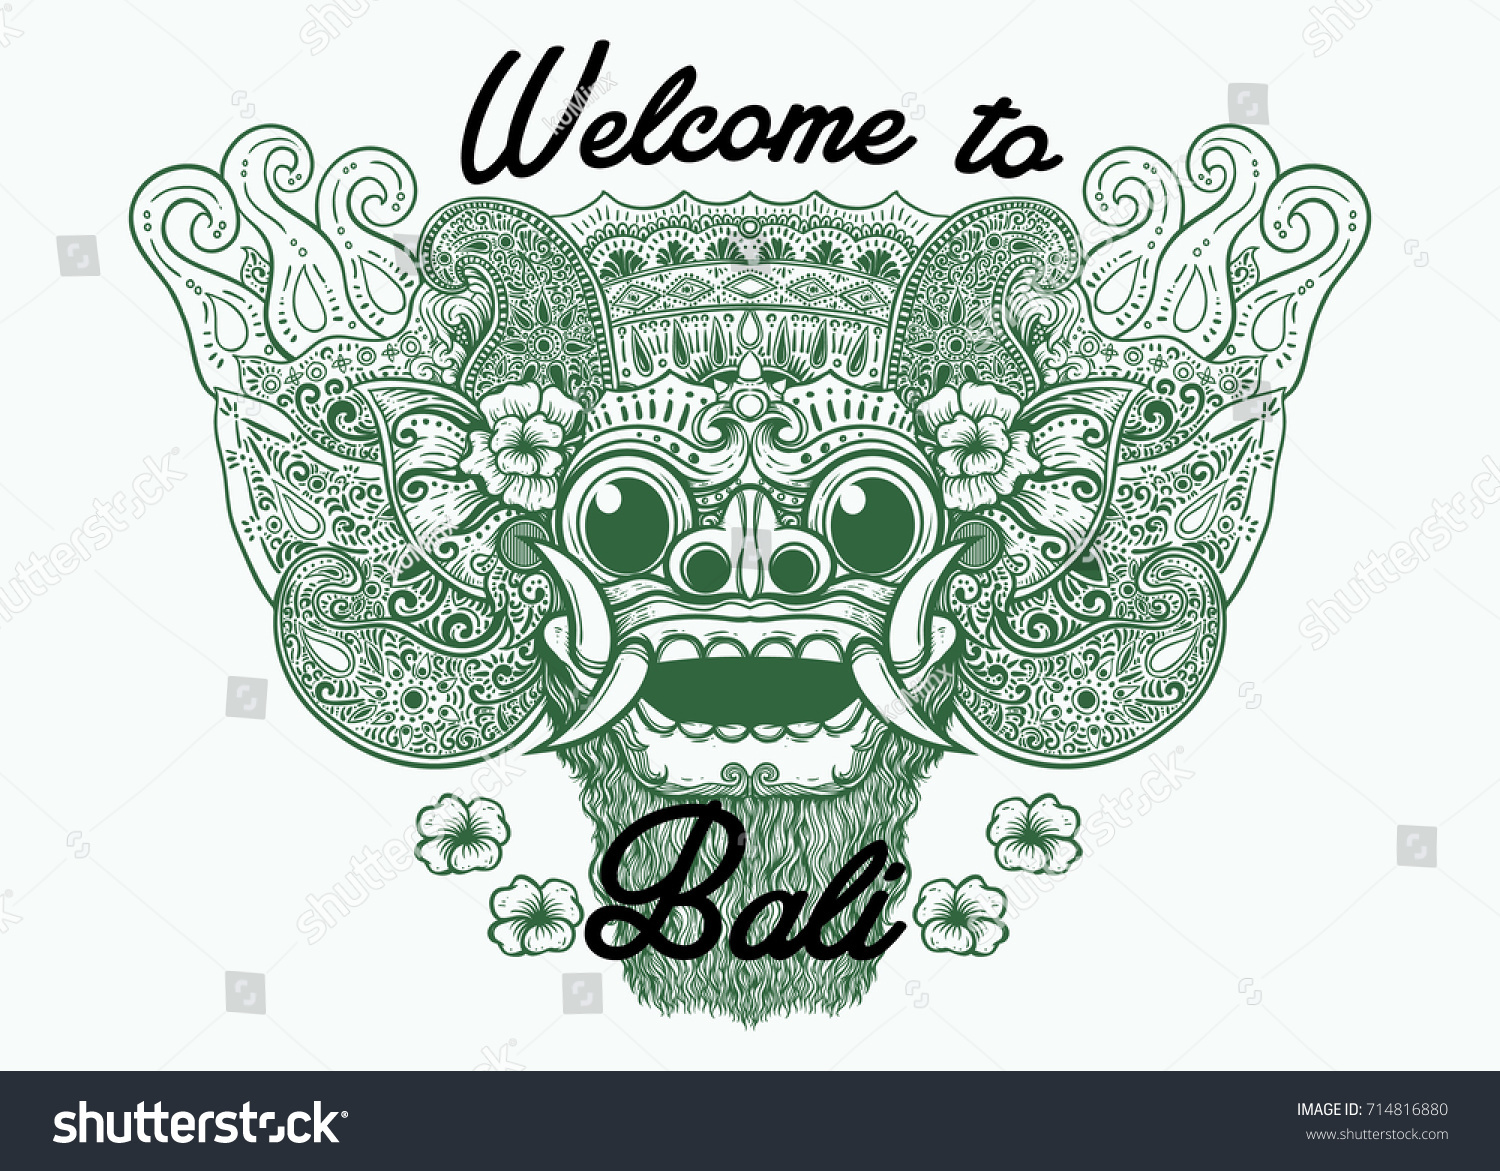 Welcome bali mask drawing background stock vector 714816880 welcome to bali mask drawing background altavistaventures Gallery